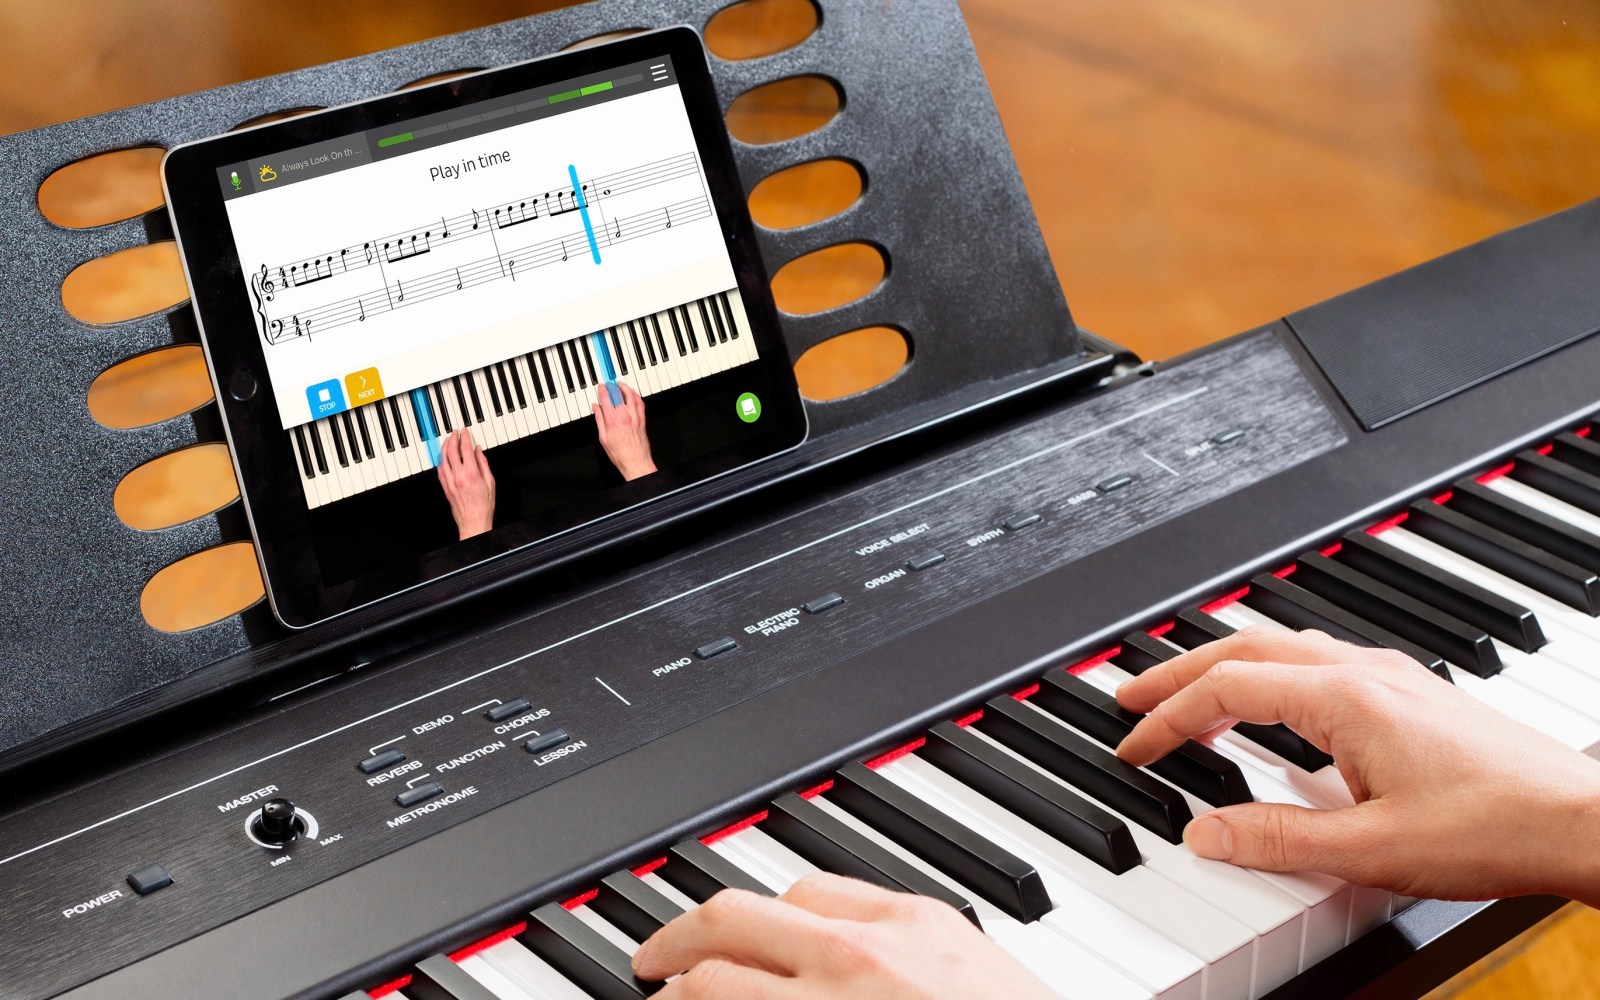 Skoove is a new iOS app that transforms your iPad into a private piano instructor